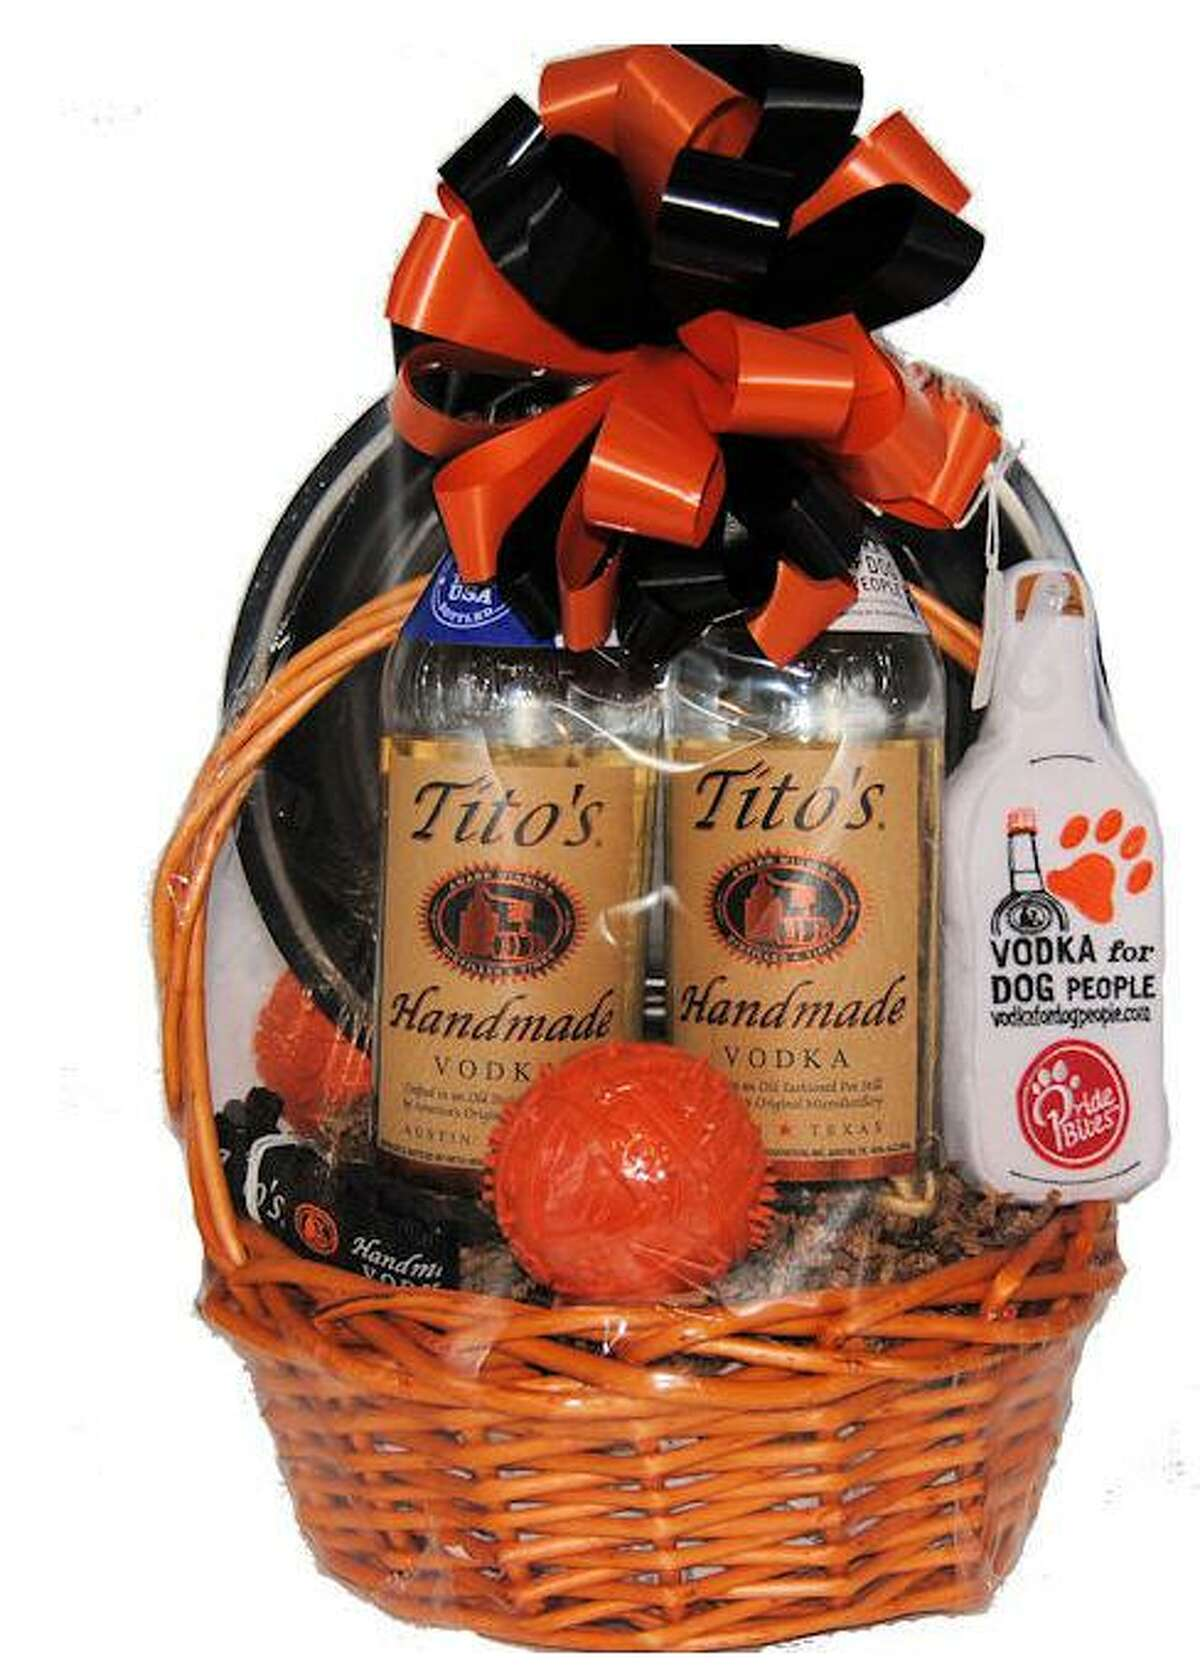 Tito Beveridge Tito's Handmade Vodka Austin has donated a basket for the live auction hosted by the Katy Veterans of Foreign Wars Post 9182. The auction summary notes that Tito is a dog lover as the basket includes items for dogs along with the vodka.